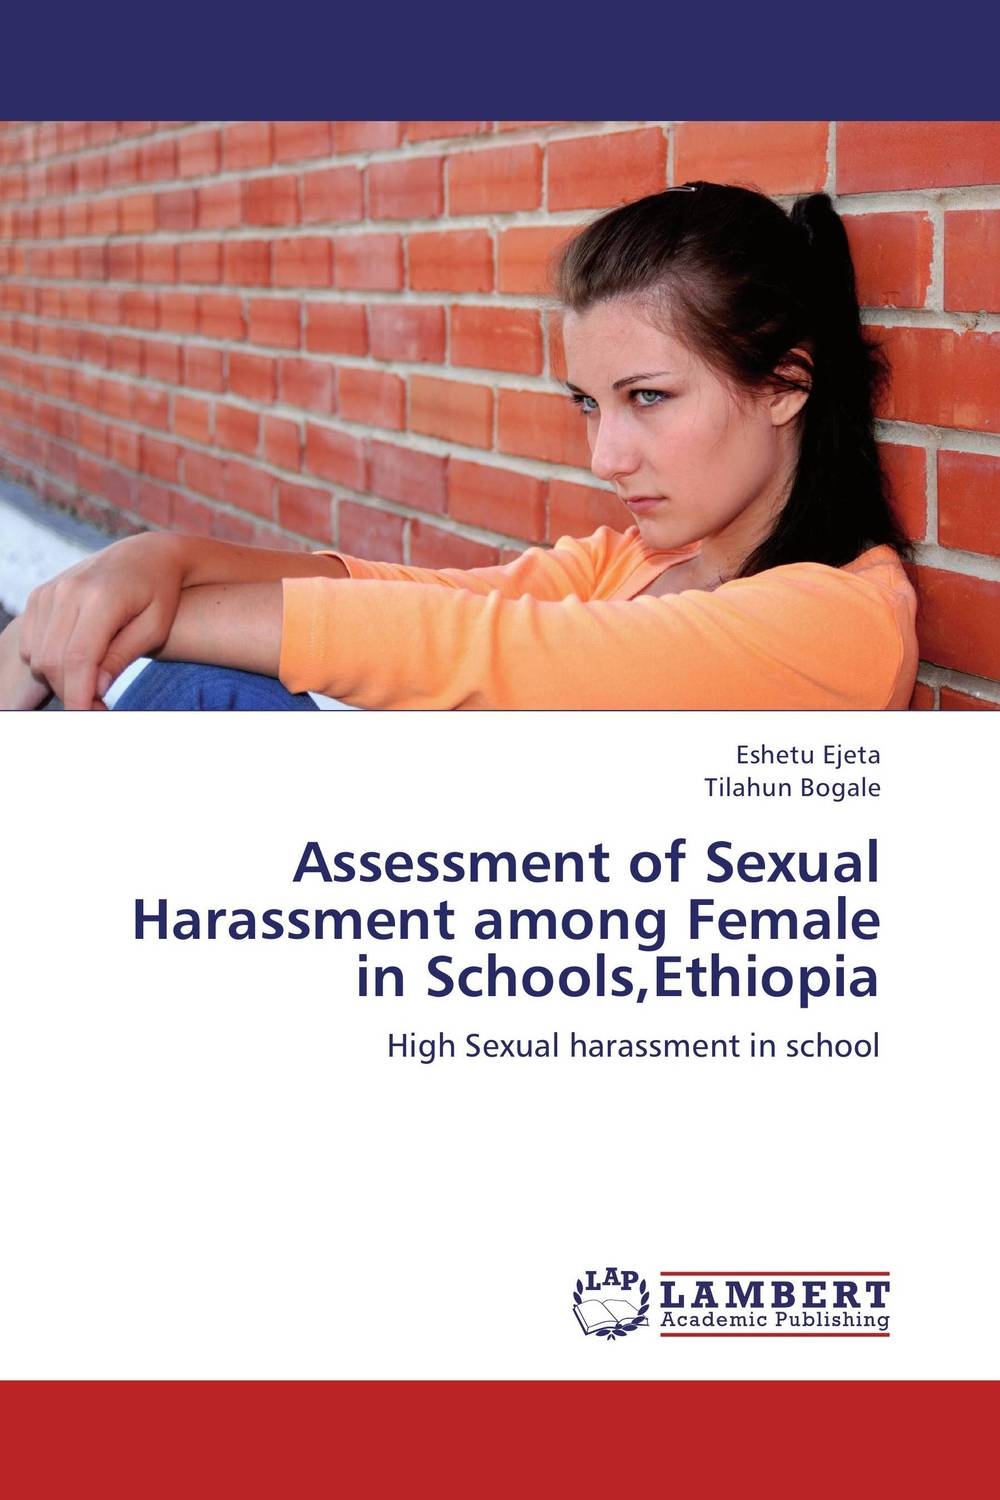 Assessment of Sexual Harassment among Female in Schools,Ethiopia